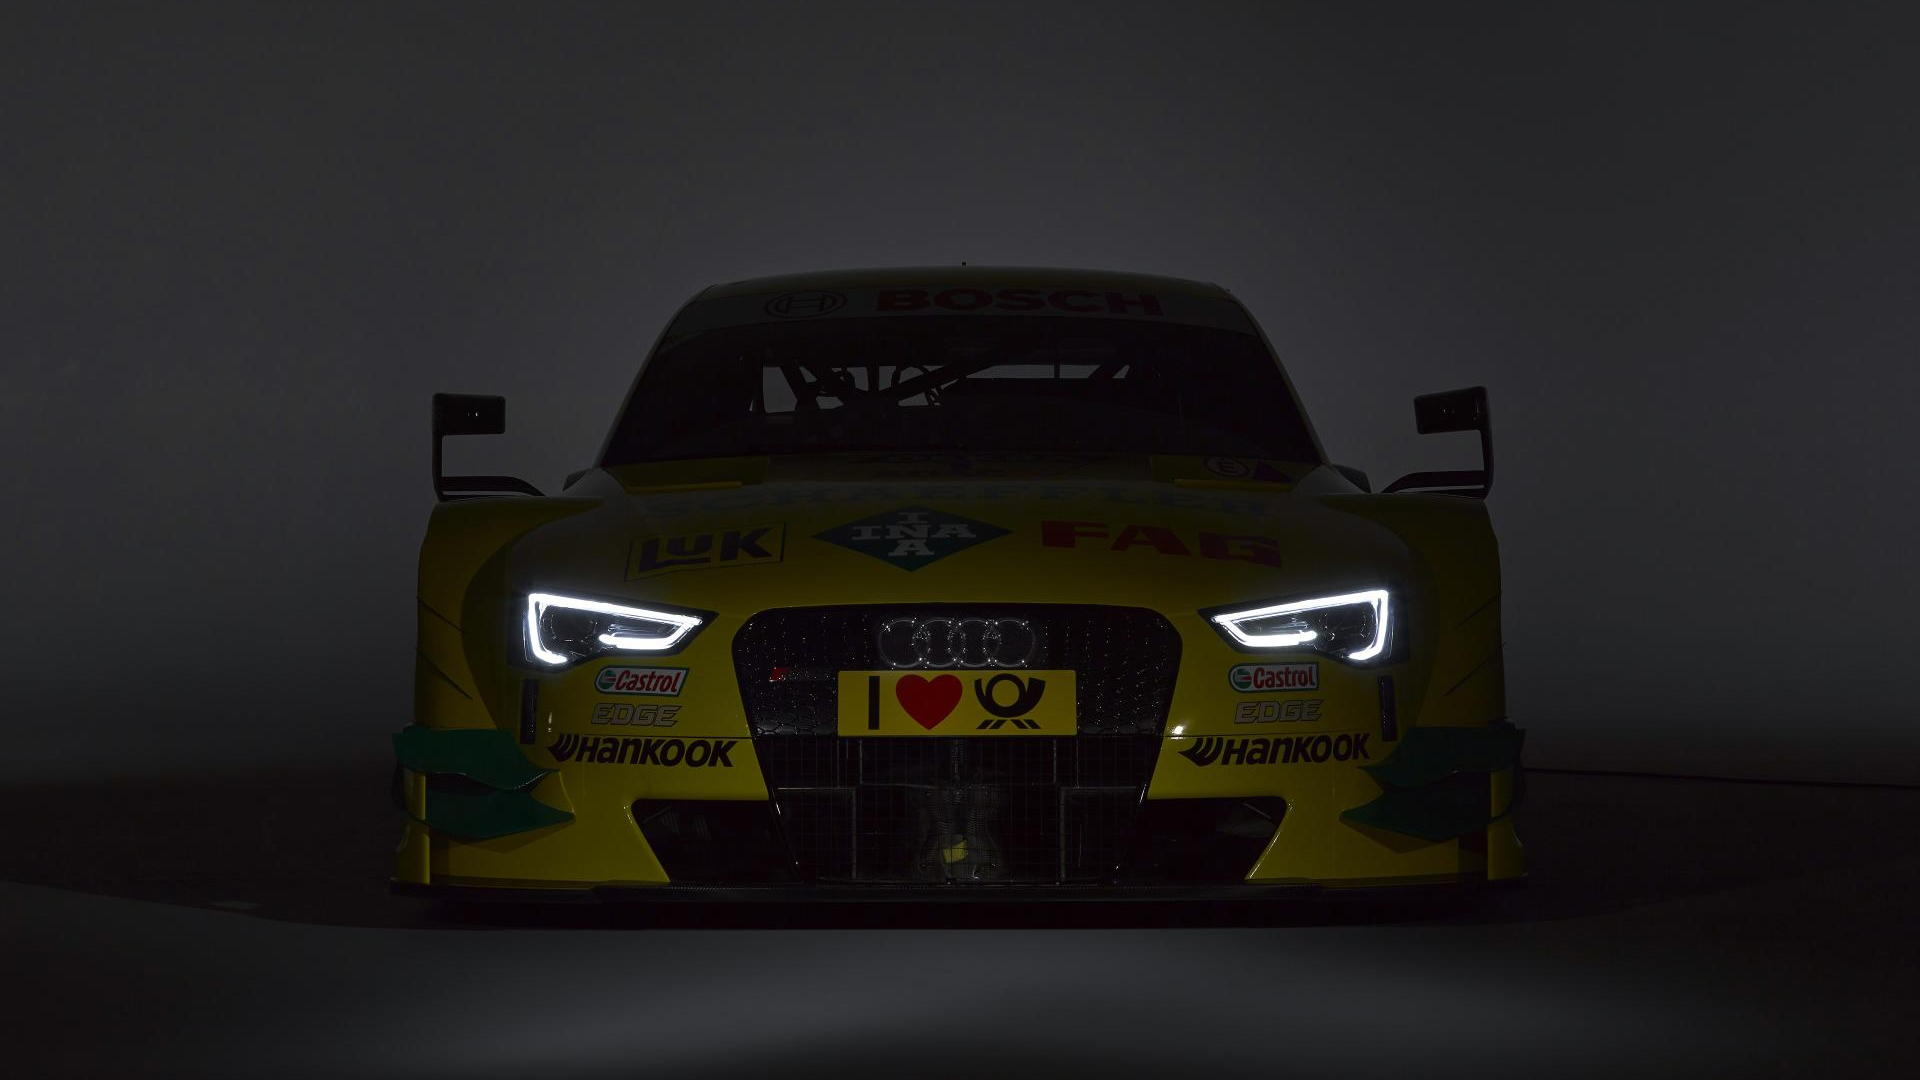 2014 Audi RS 5 DTM race car